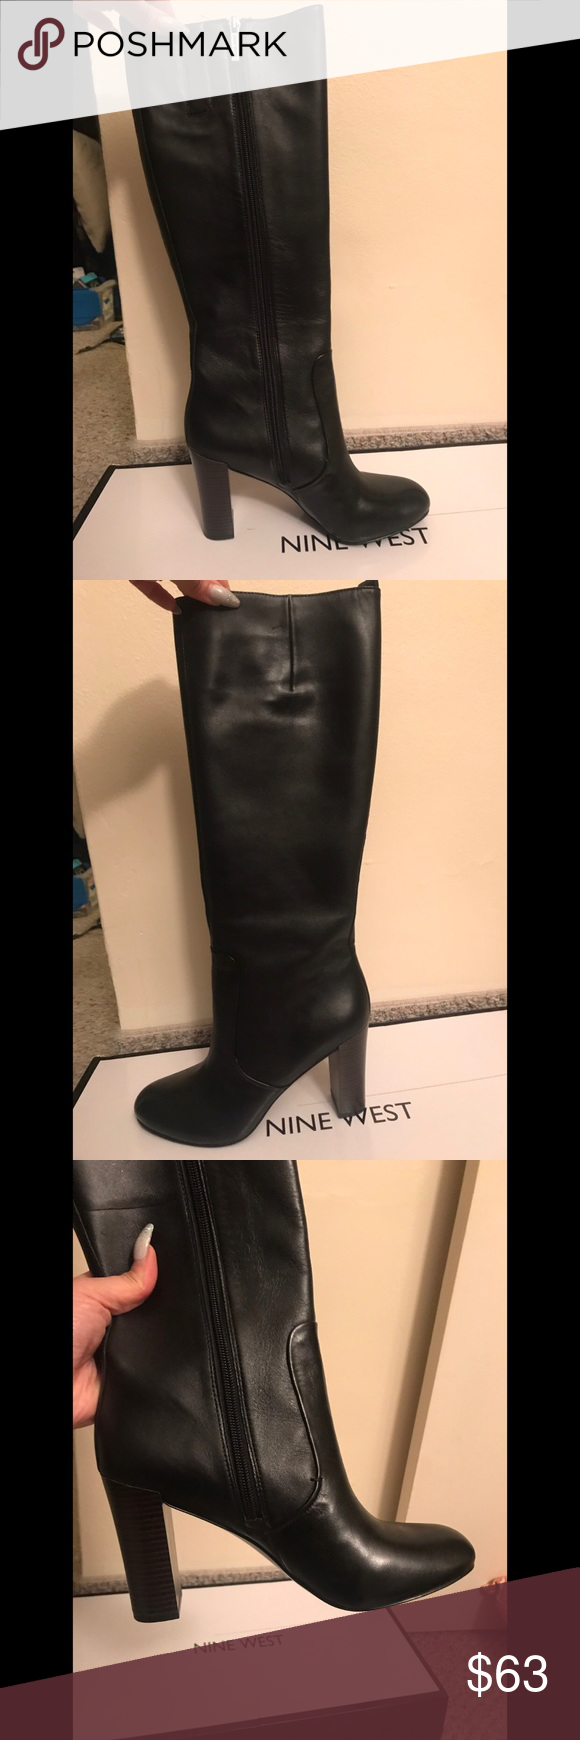 5001056c9f3 Nine West Sabora Boot Size 8 Size 8 3.5-4 inch heel black leather boot